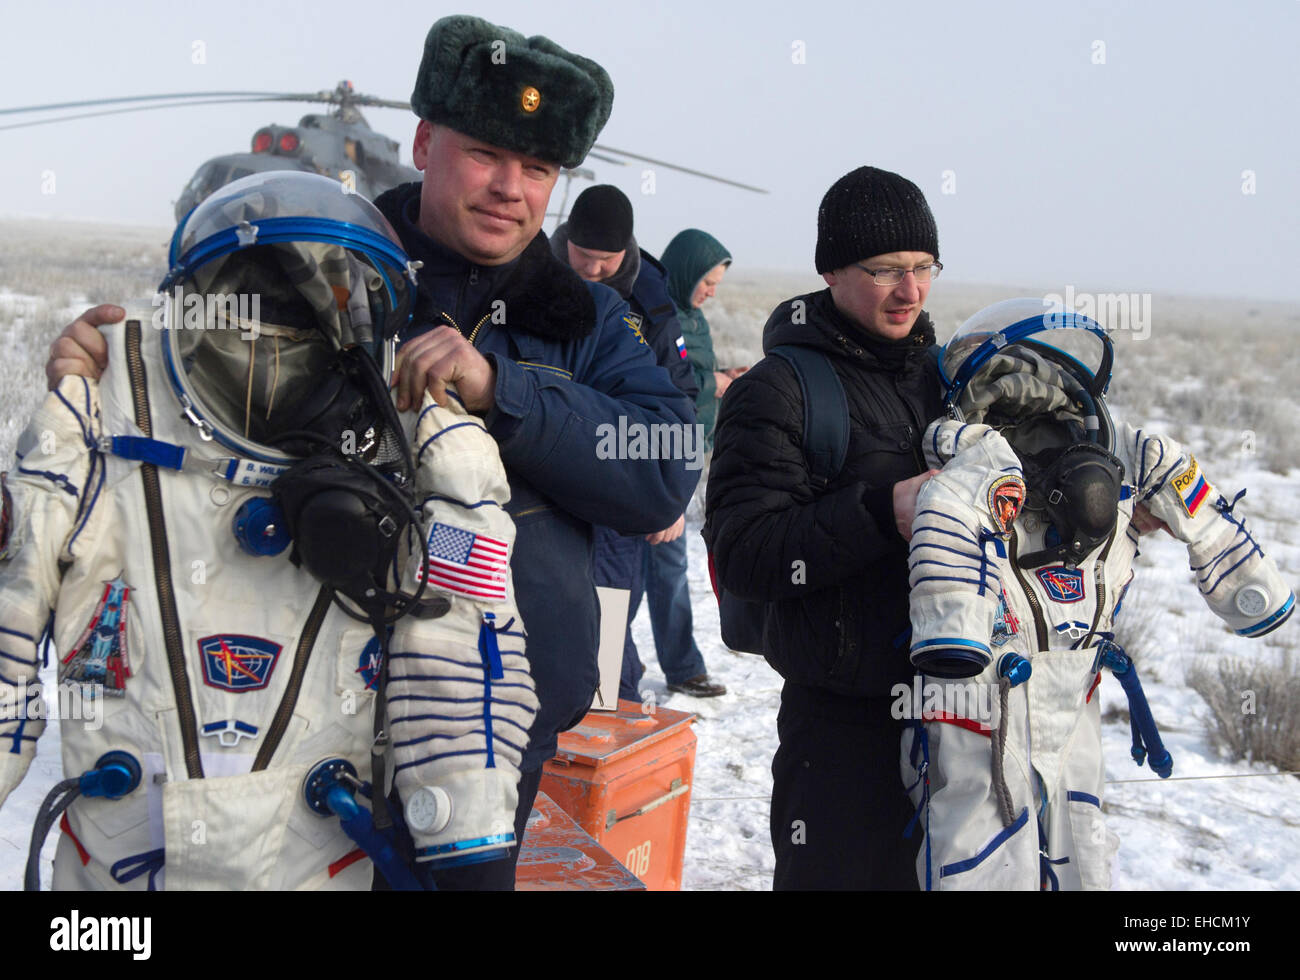 Kazakhstan. 12th March, 2015. People carry space suits of the ISS Expedition 41/42 crew members after the landing - Stock Image